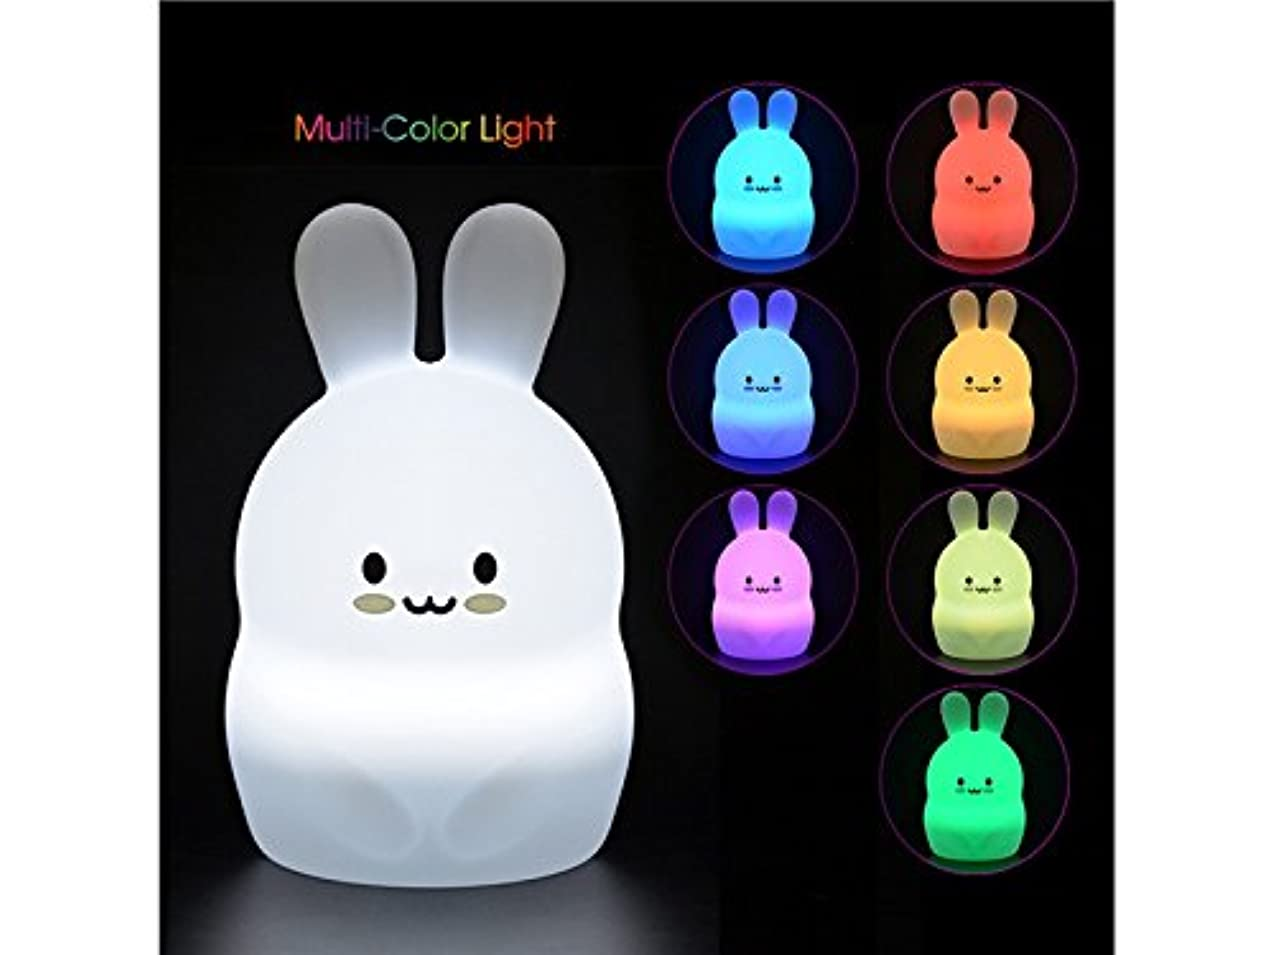 Junson Laptop Lamp Children Silicone Rubbit Lamp Multi-Coloured LED Lamp USB Rechargeable with Remote for Children Bedroom Reading Lamp